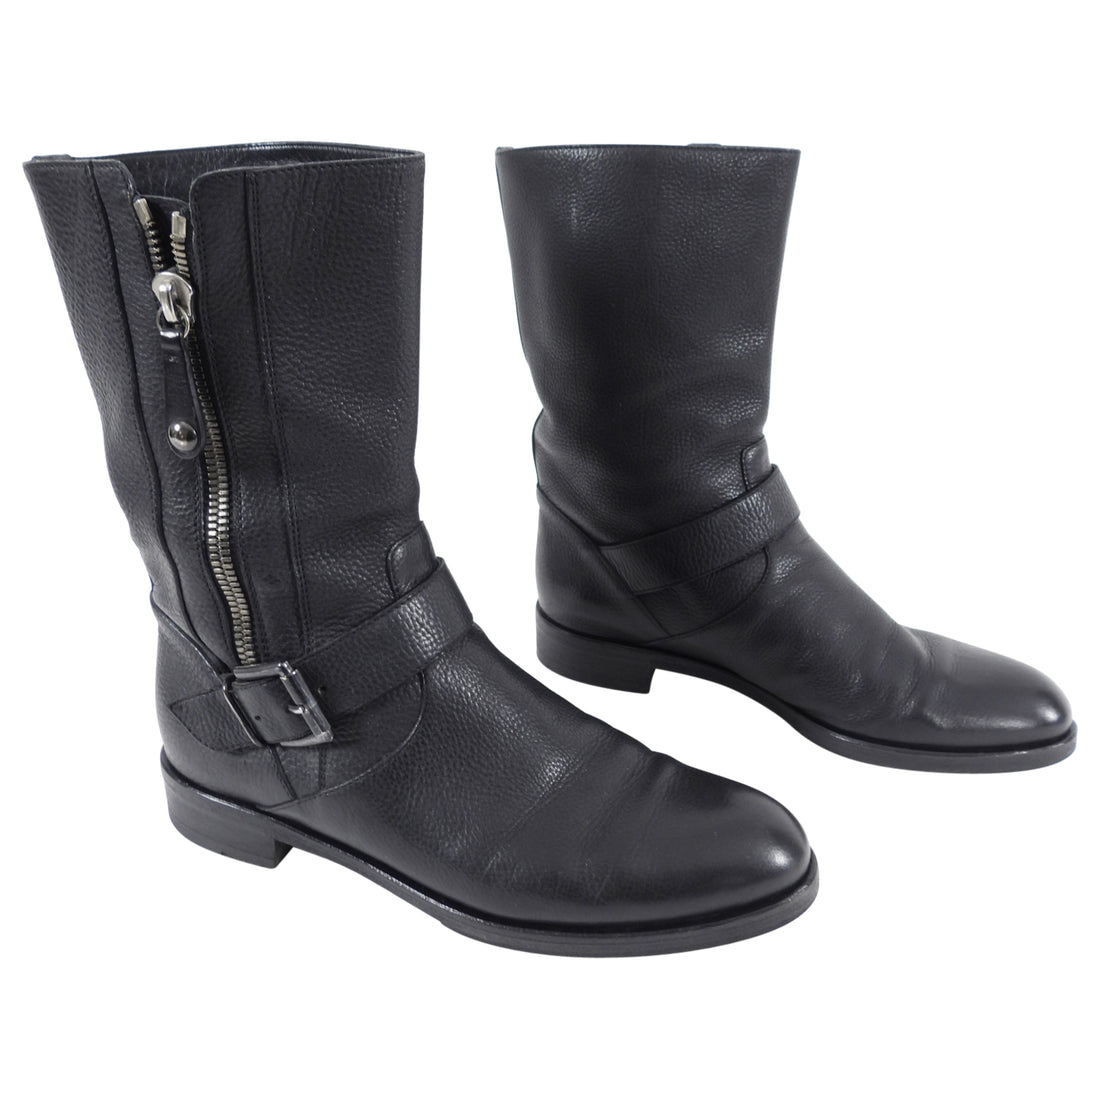 Gianvitto Rossi Black Leather Ankle Boots with Zip Detail - 38.5 / 8